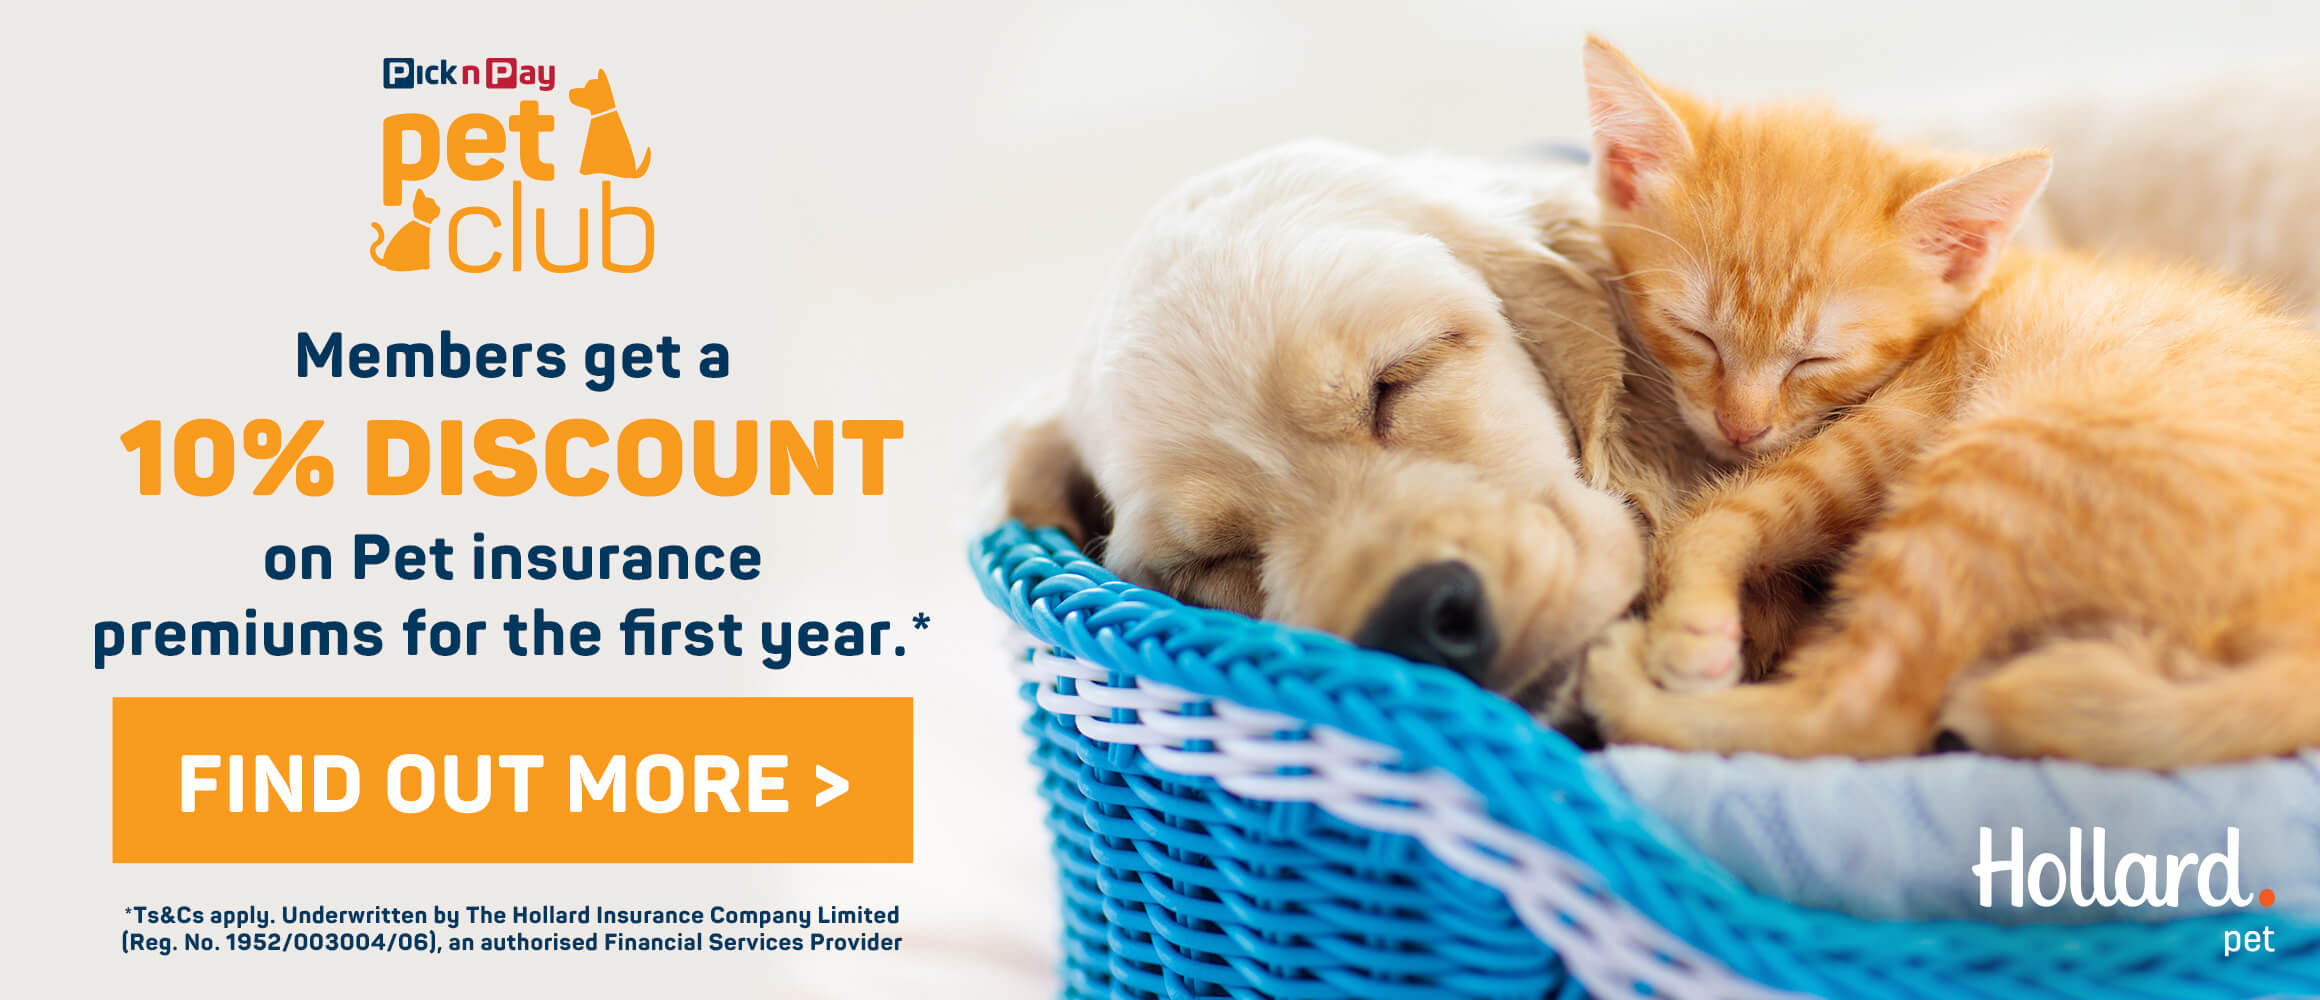 Members get a 10% discount on Pet insurance premiuns for the first year. Find out more